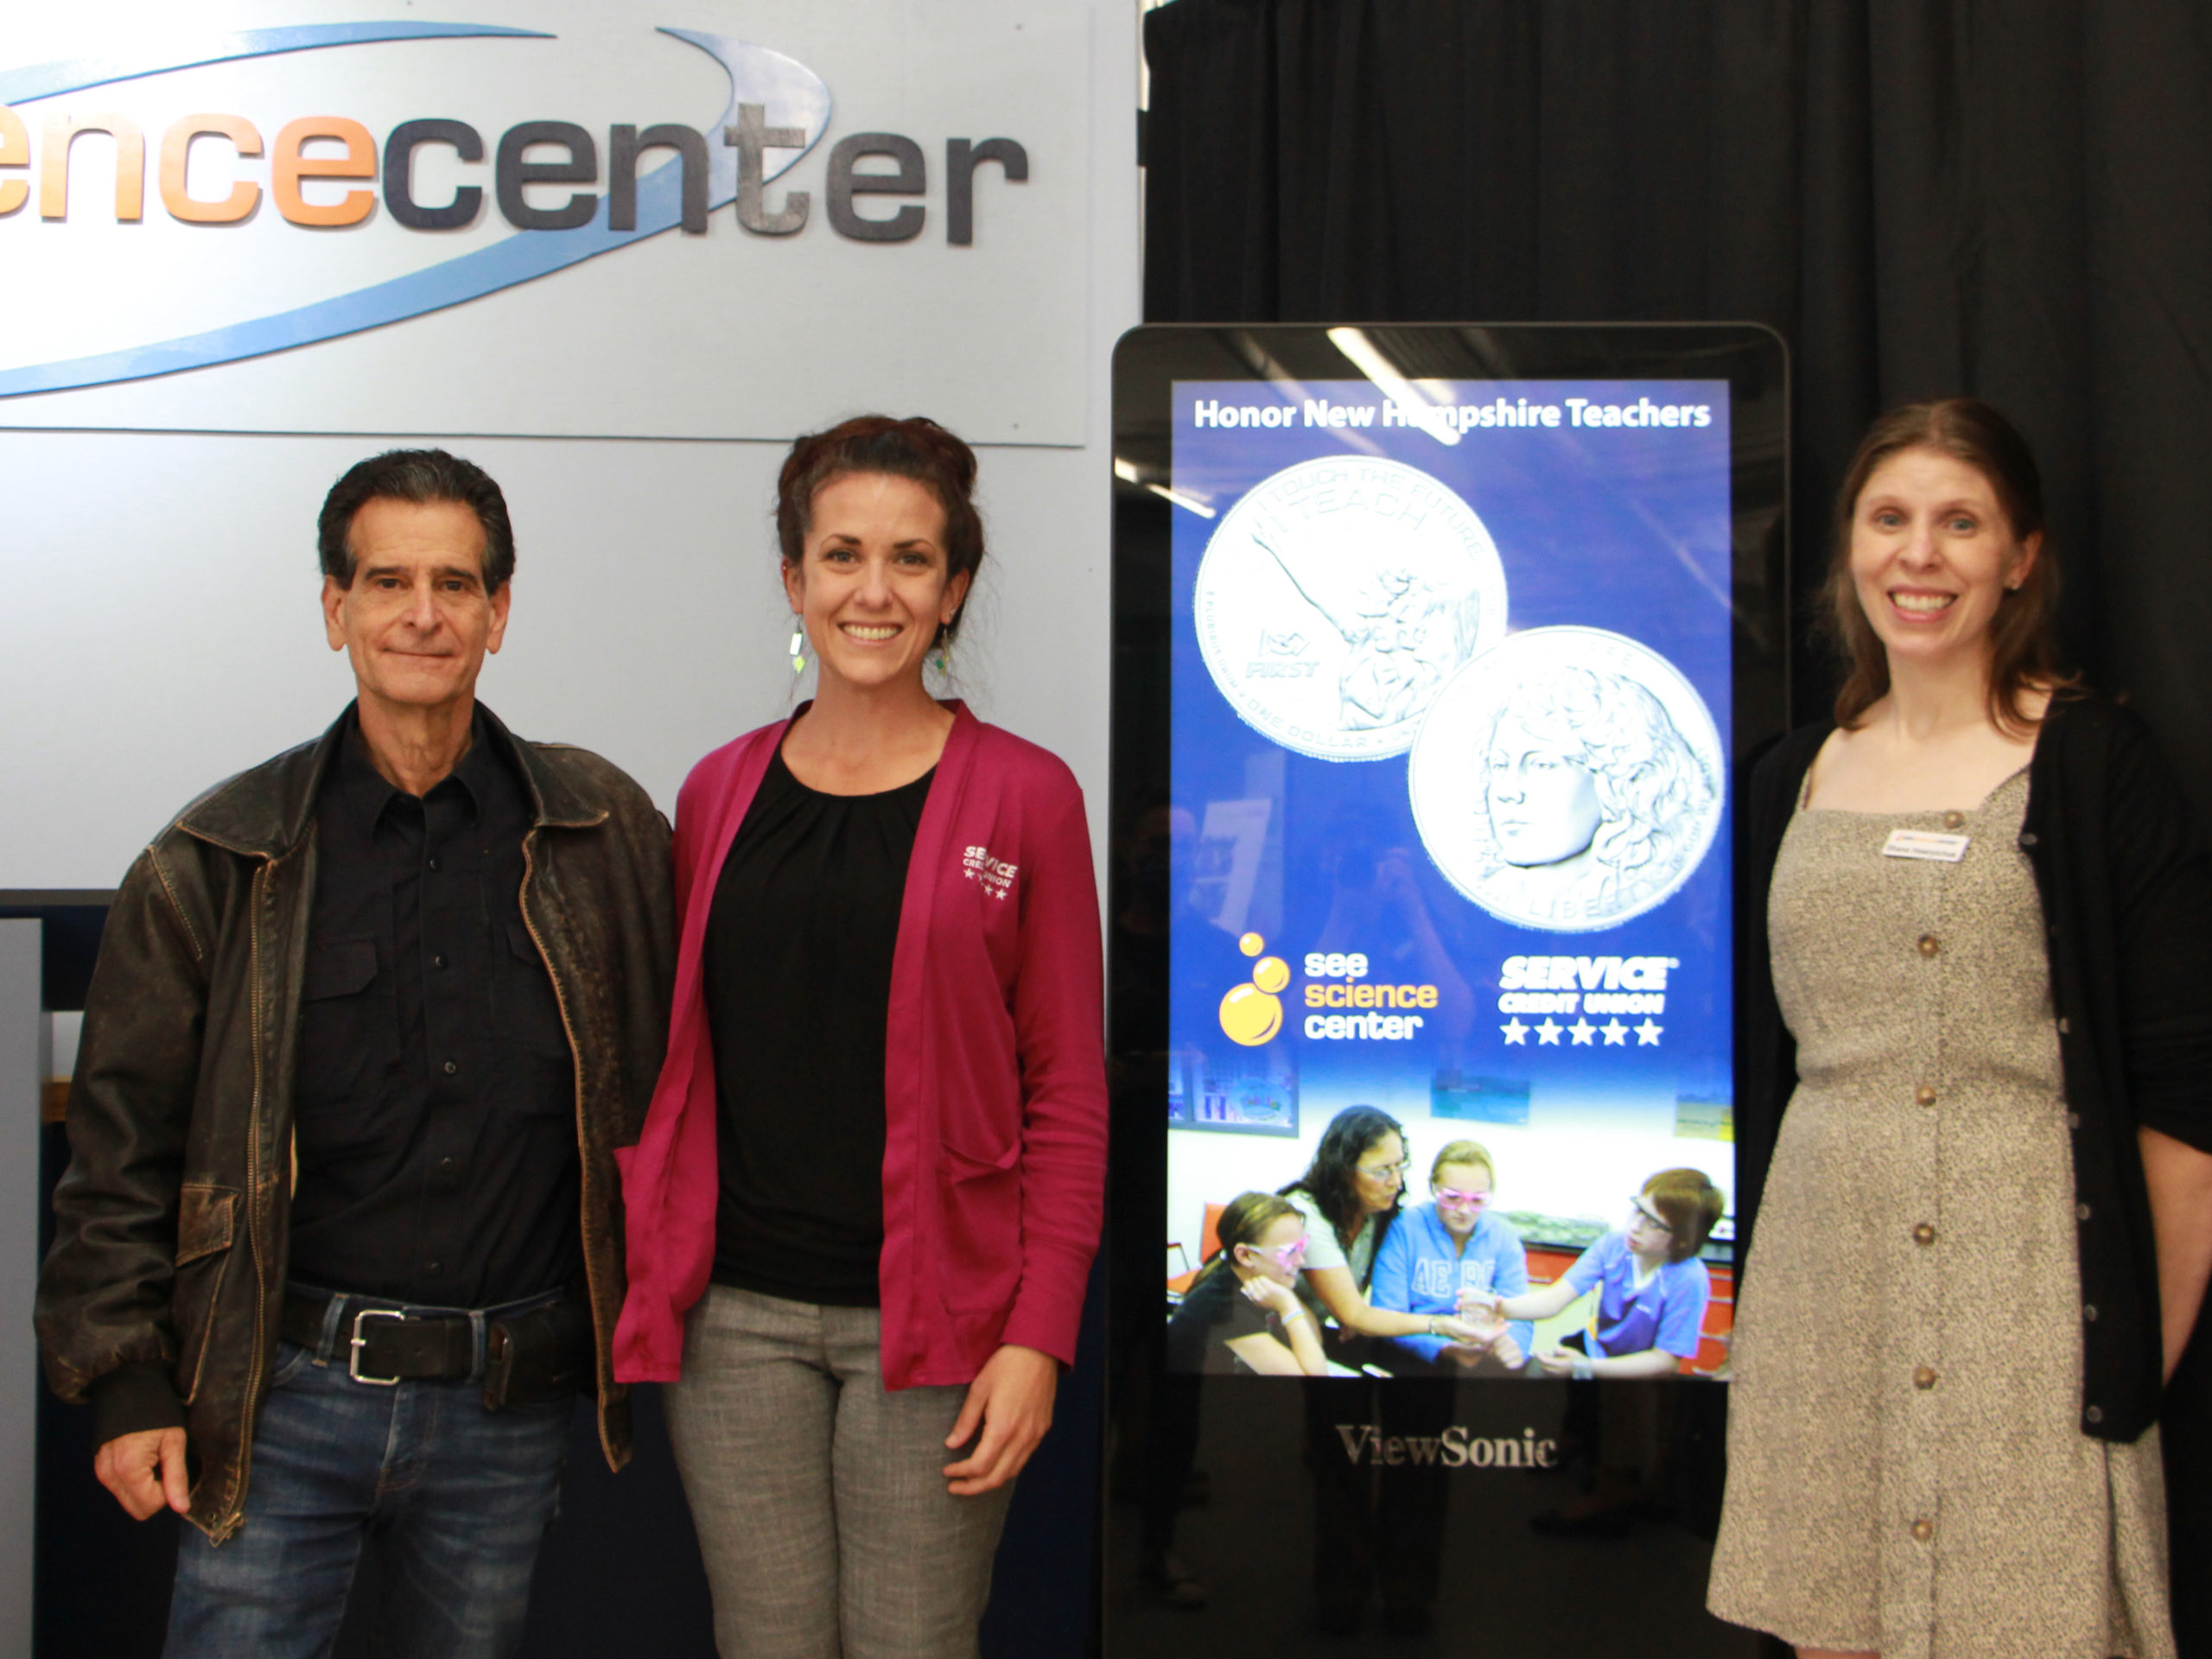 Dean Kamen and Jamie Yates representing sponsor Service Credit union poses with SEE director Shana Hawrylchak at the program launch.